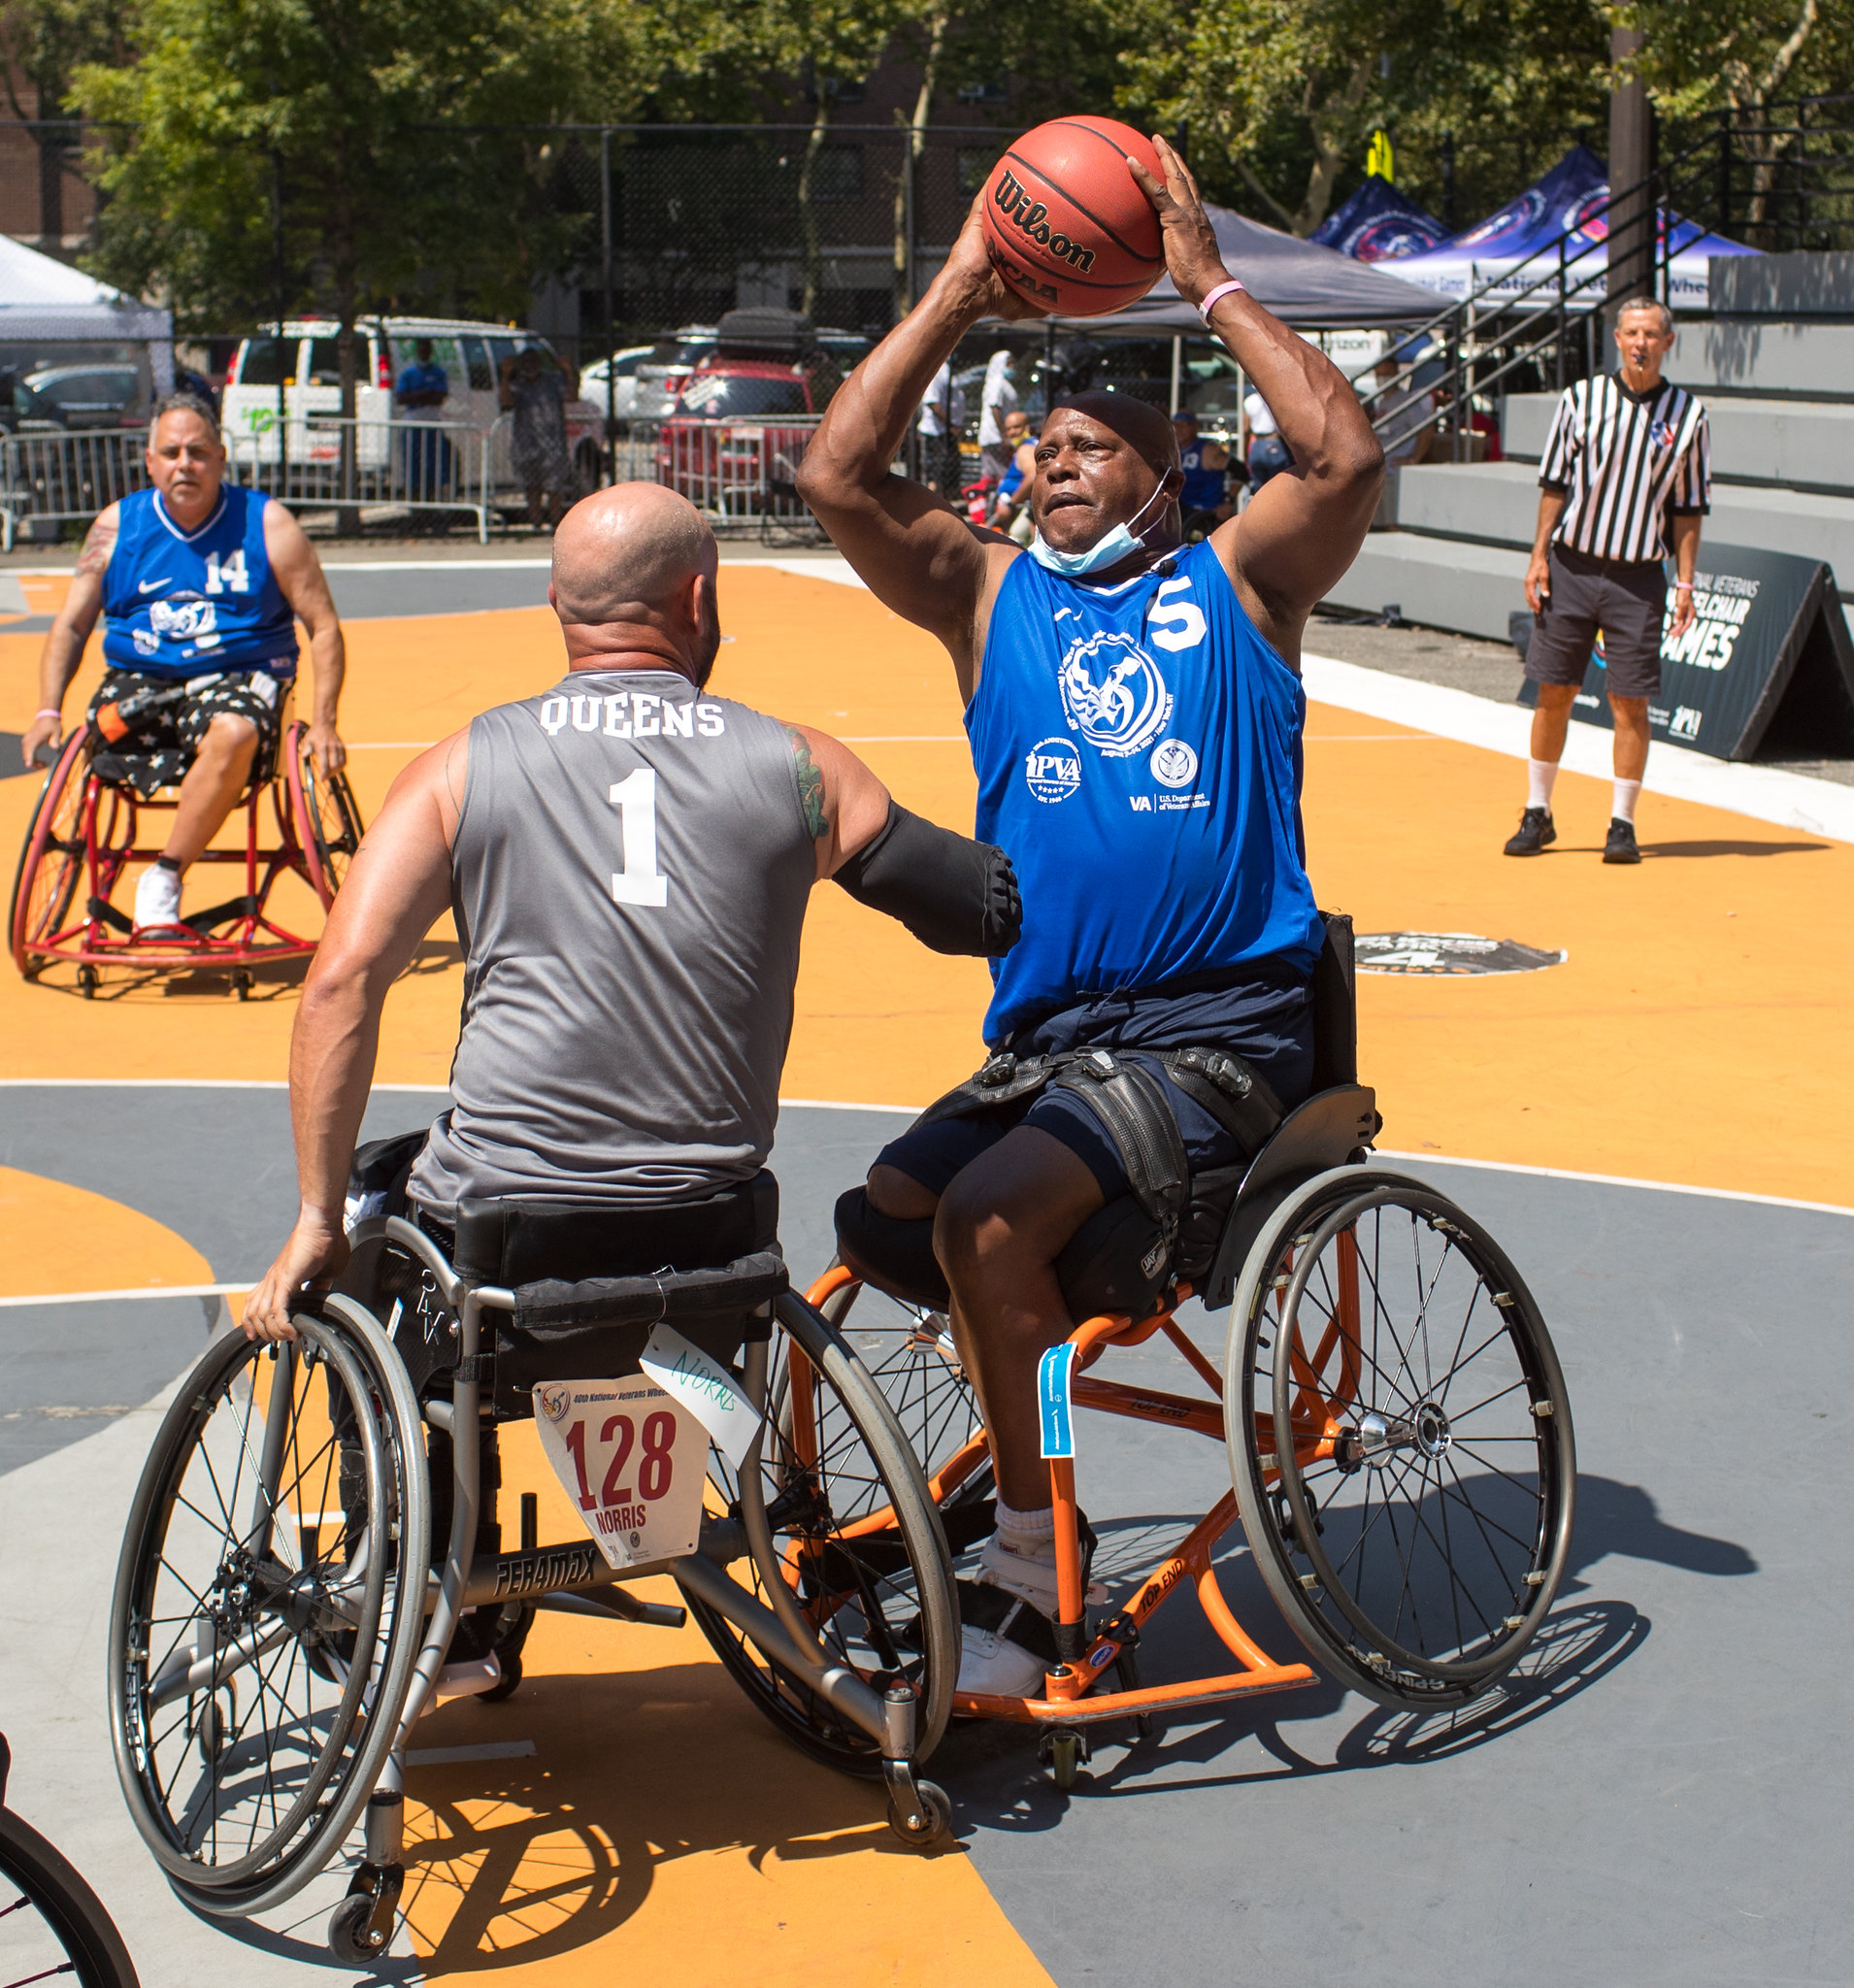 Army Veteran Roy Wilkins (5), a former college basketball player, won a bronze medal in basketball at the 40th National Veterans Wheelchair Games.